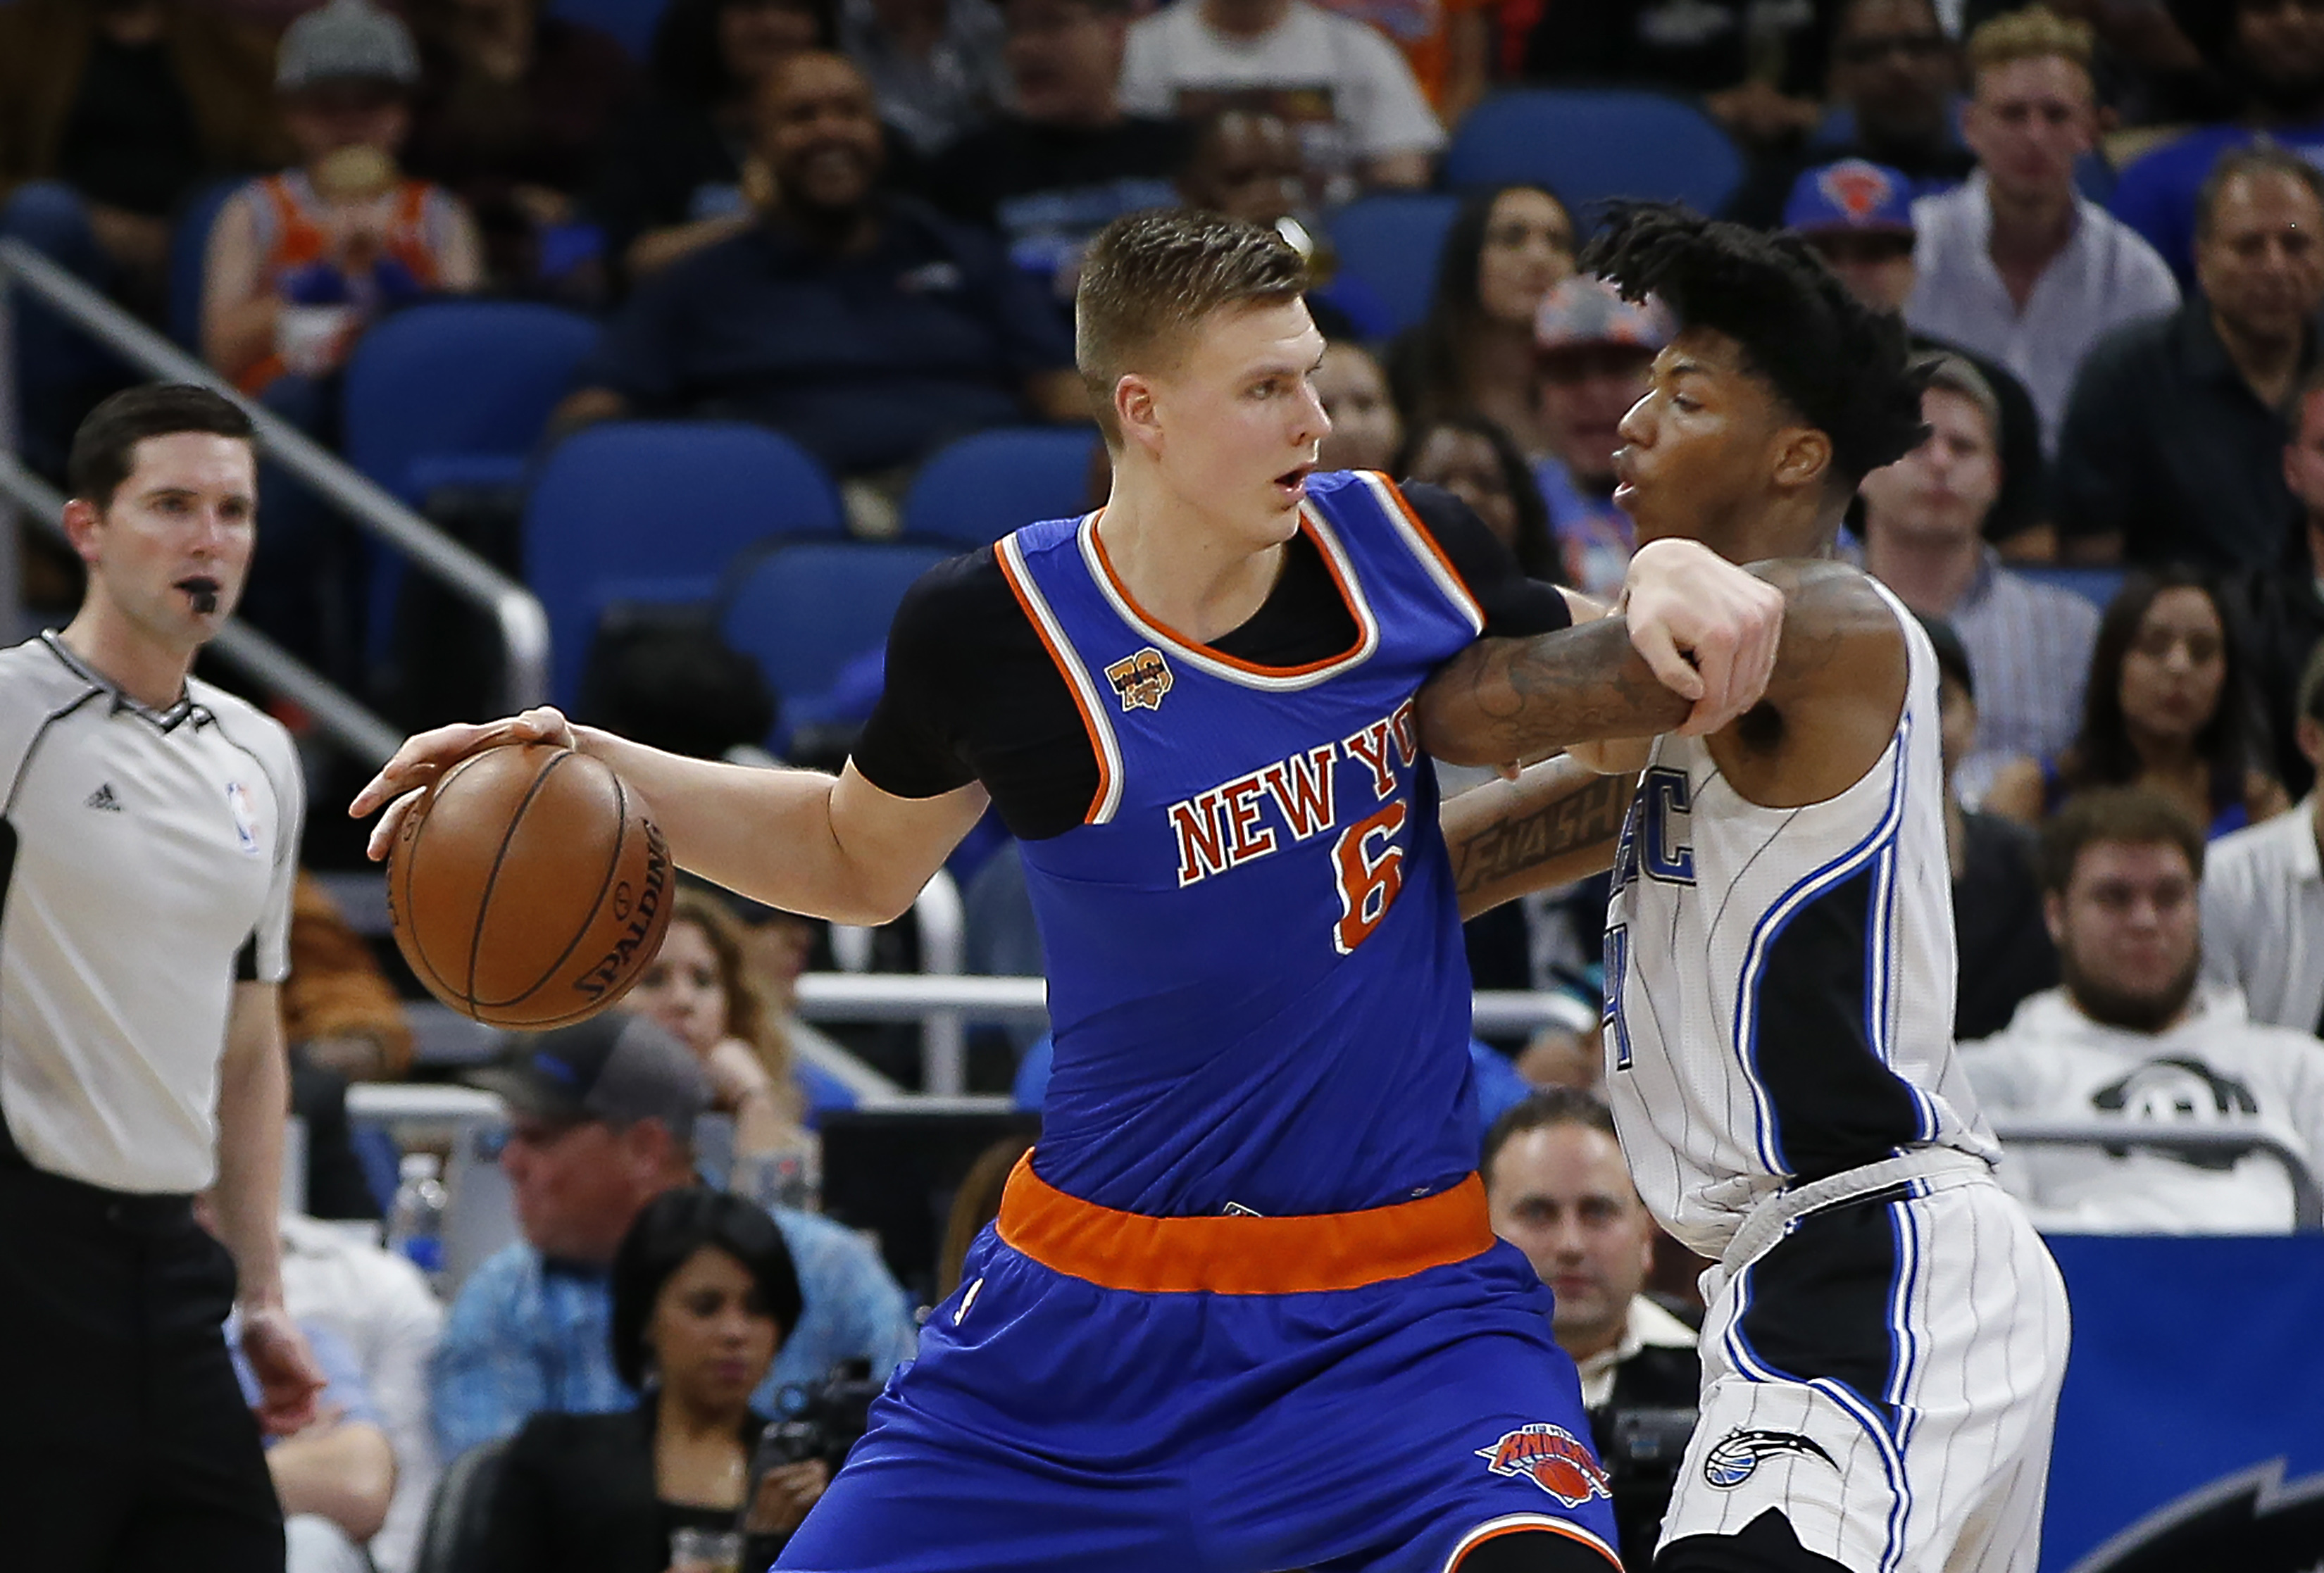 9923308-nba-new-york-knicks-at-orlando-magic